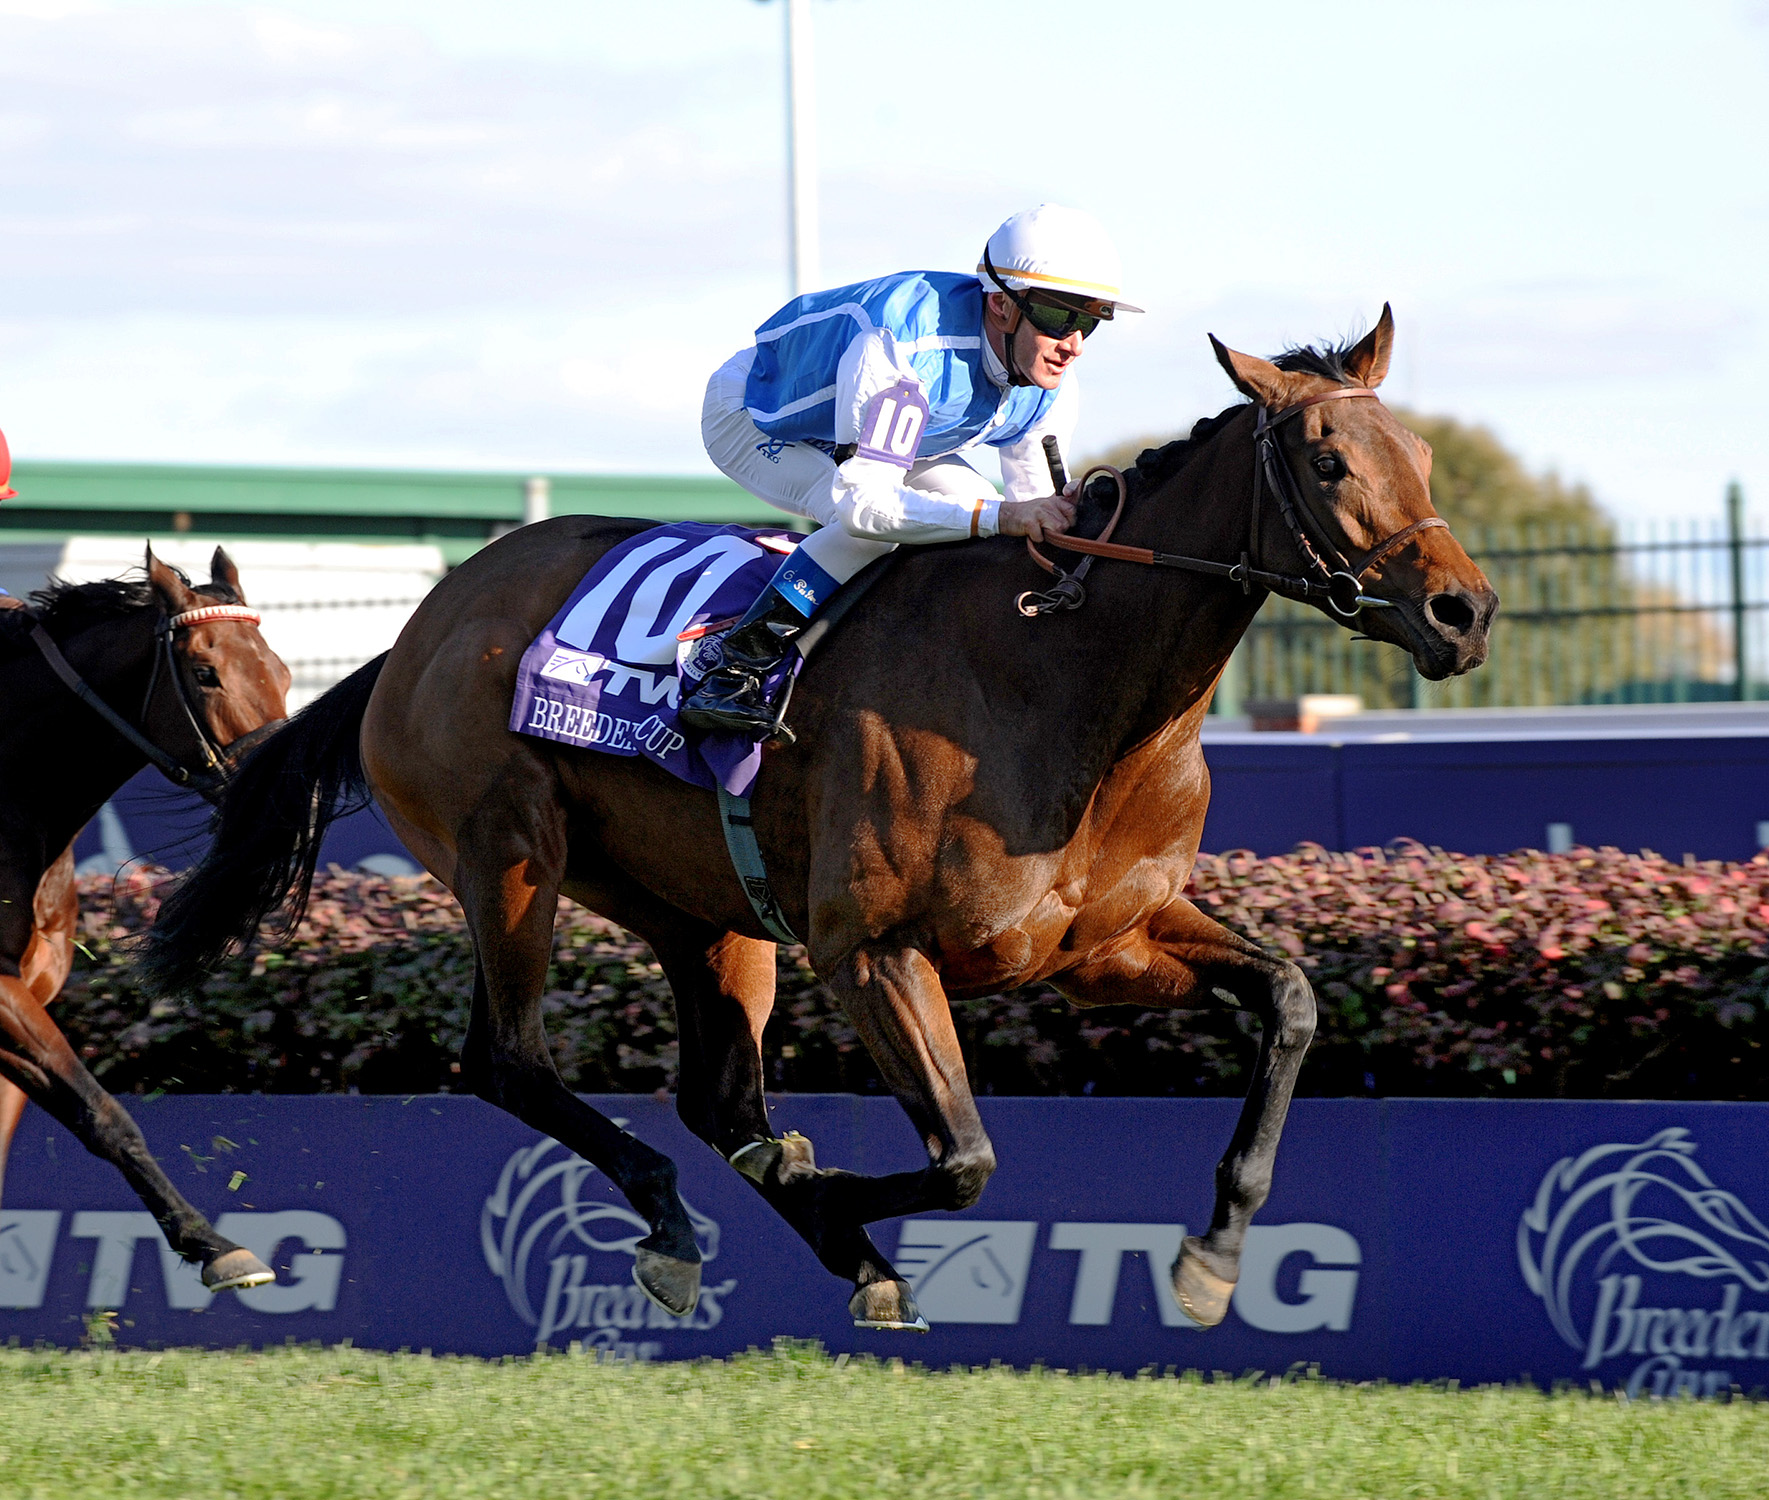 Goldikova and jockey Olivier Peslier racing in Breeders Cup Mile